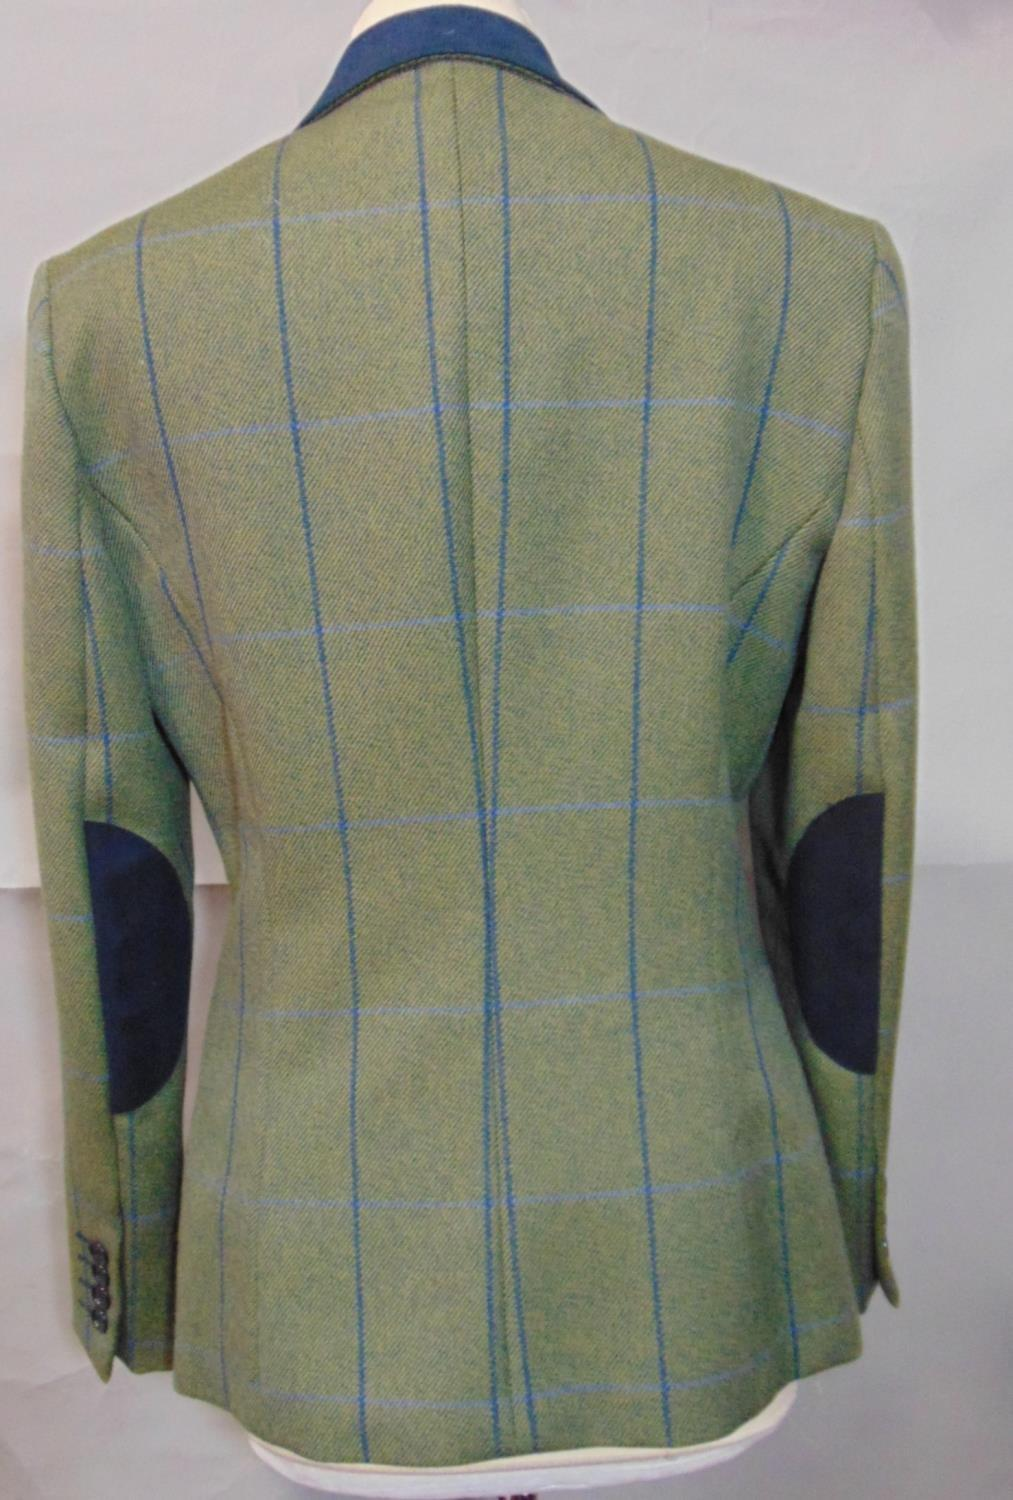 2 vintage ladies jackets including a short jacket by Cousins of Cheltenham in green woollen tweed - Image 4 of 6